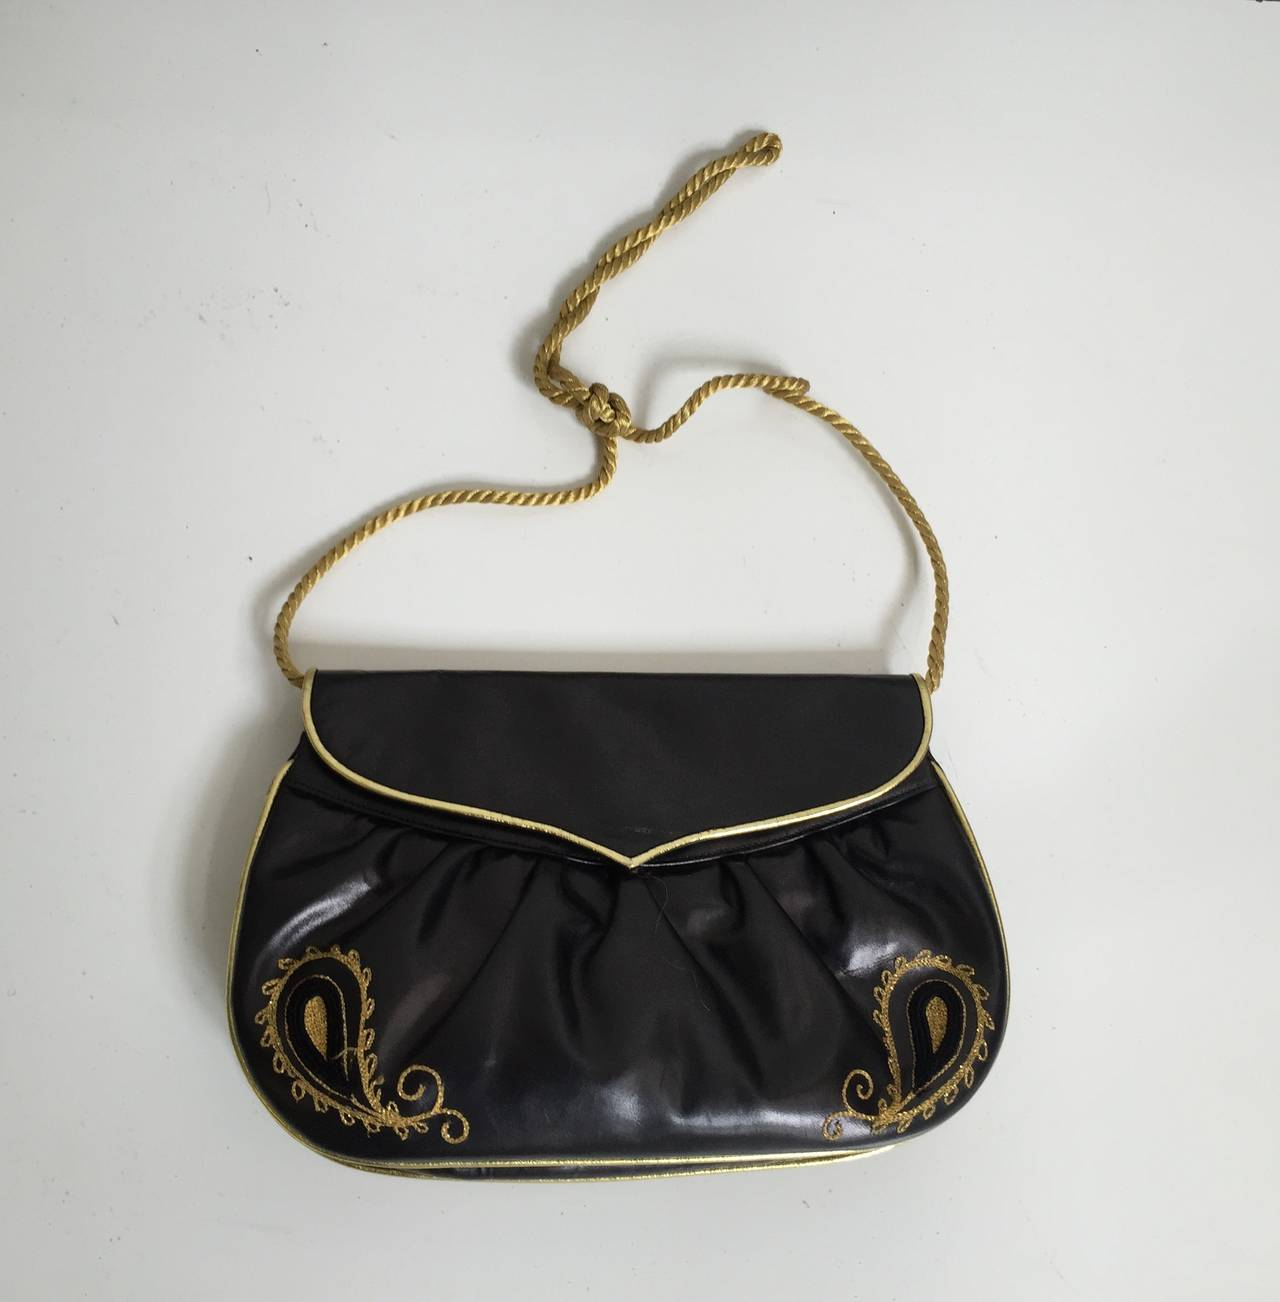 Barbara Bolan 1980s black leather embroidery paisley shoulder / clutch handbag gold trim &  made in Italy.  Barbara Bolan designs can be seen in The Metropolitan Museum of Art permanent collection. Interior has one zipper compartment. Measurements